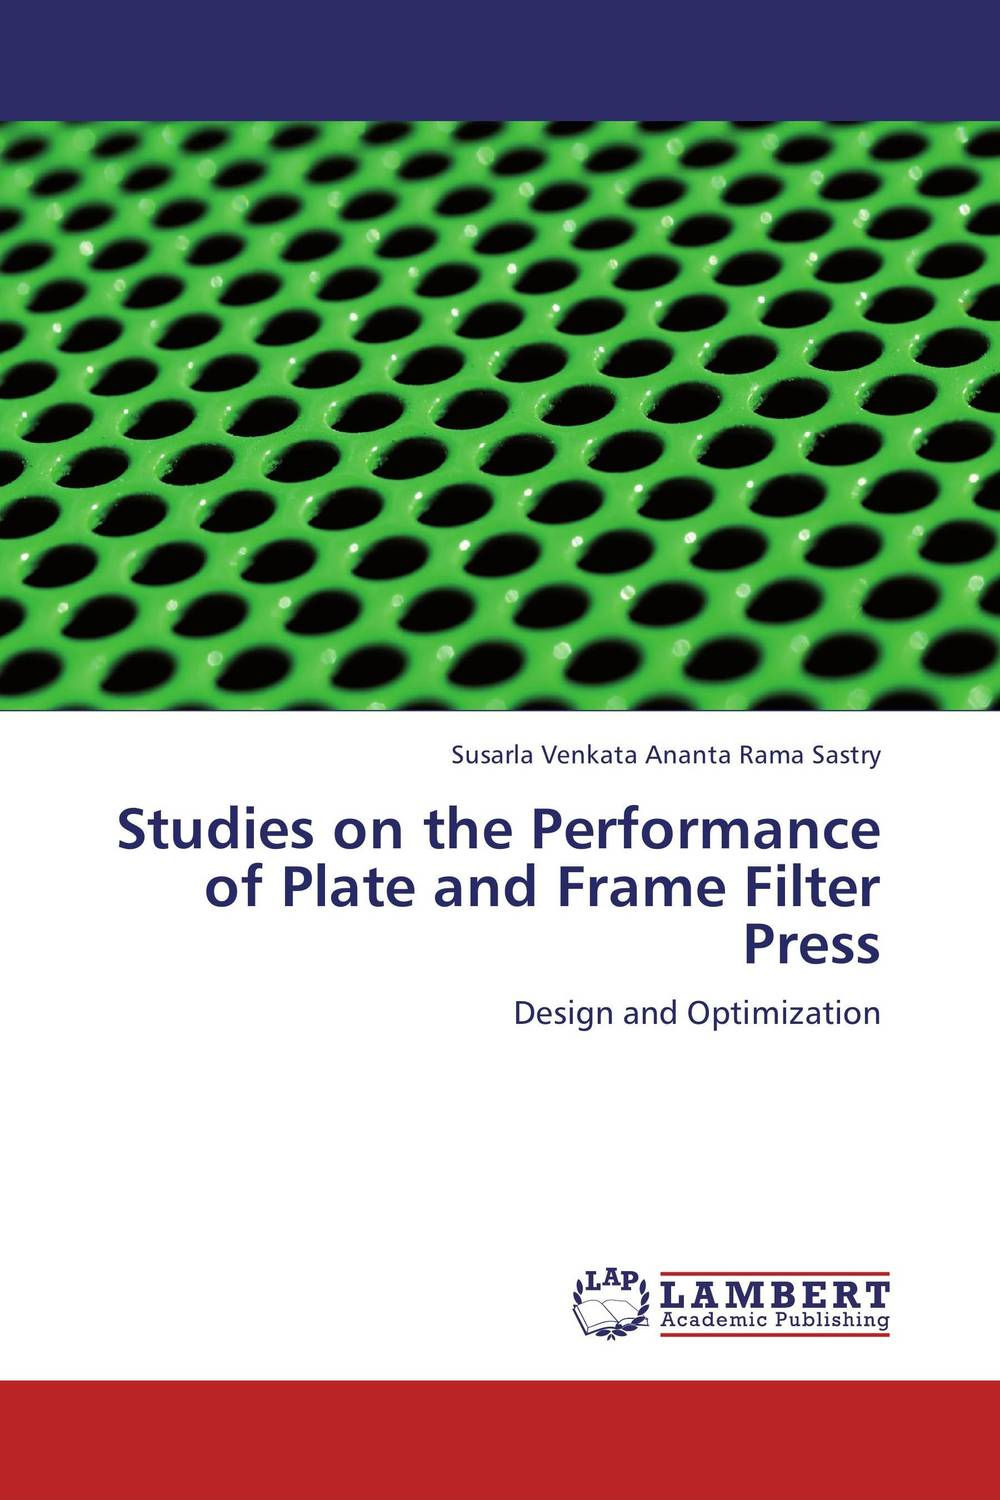 Studies on the Performance of Plate and Frame Filter Press